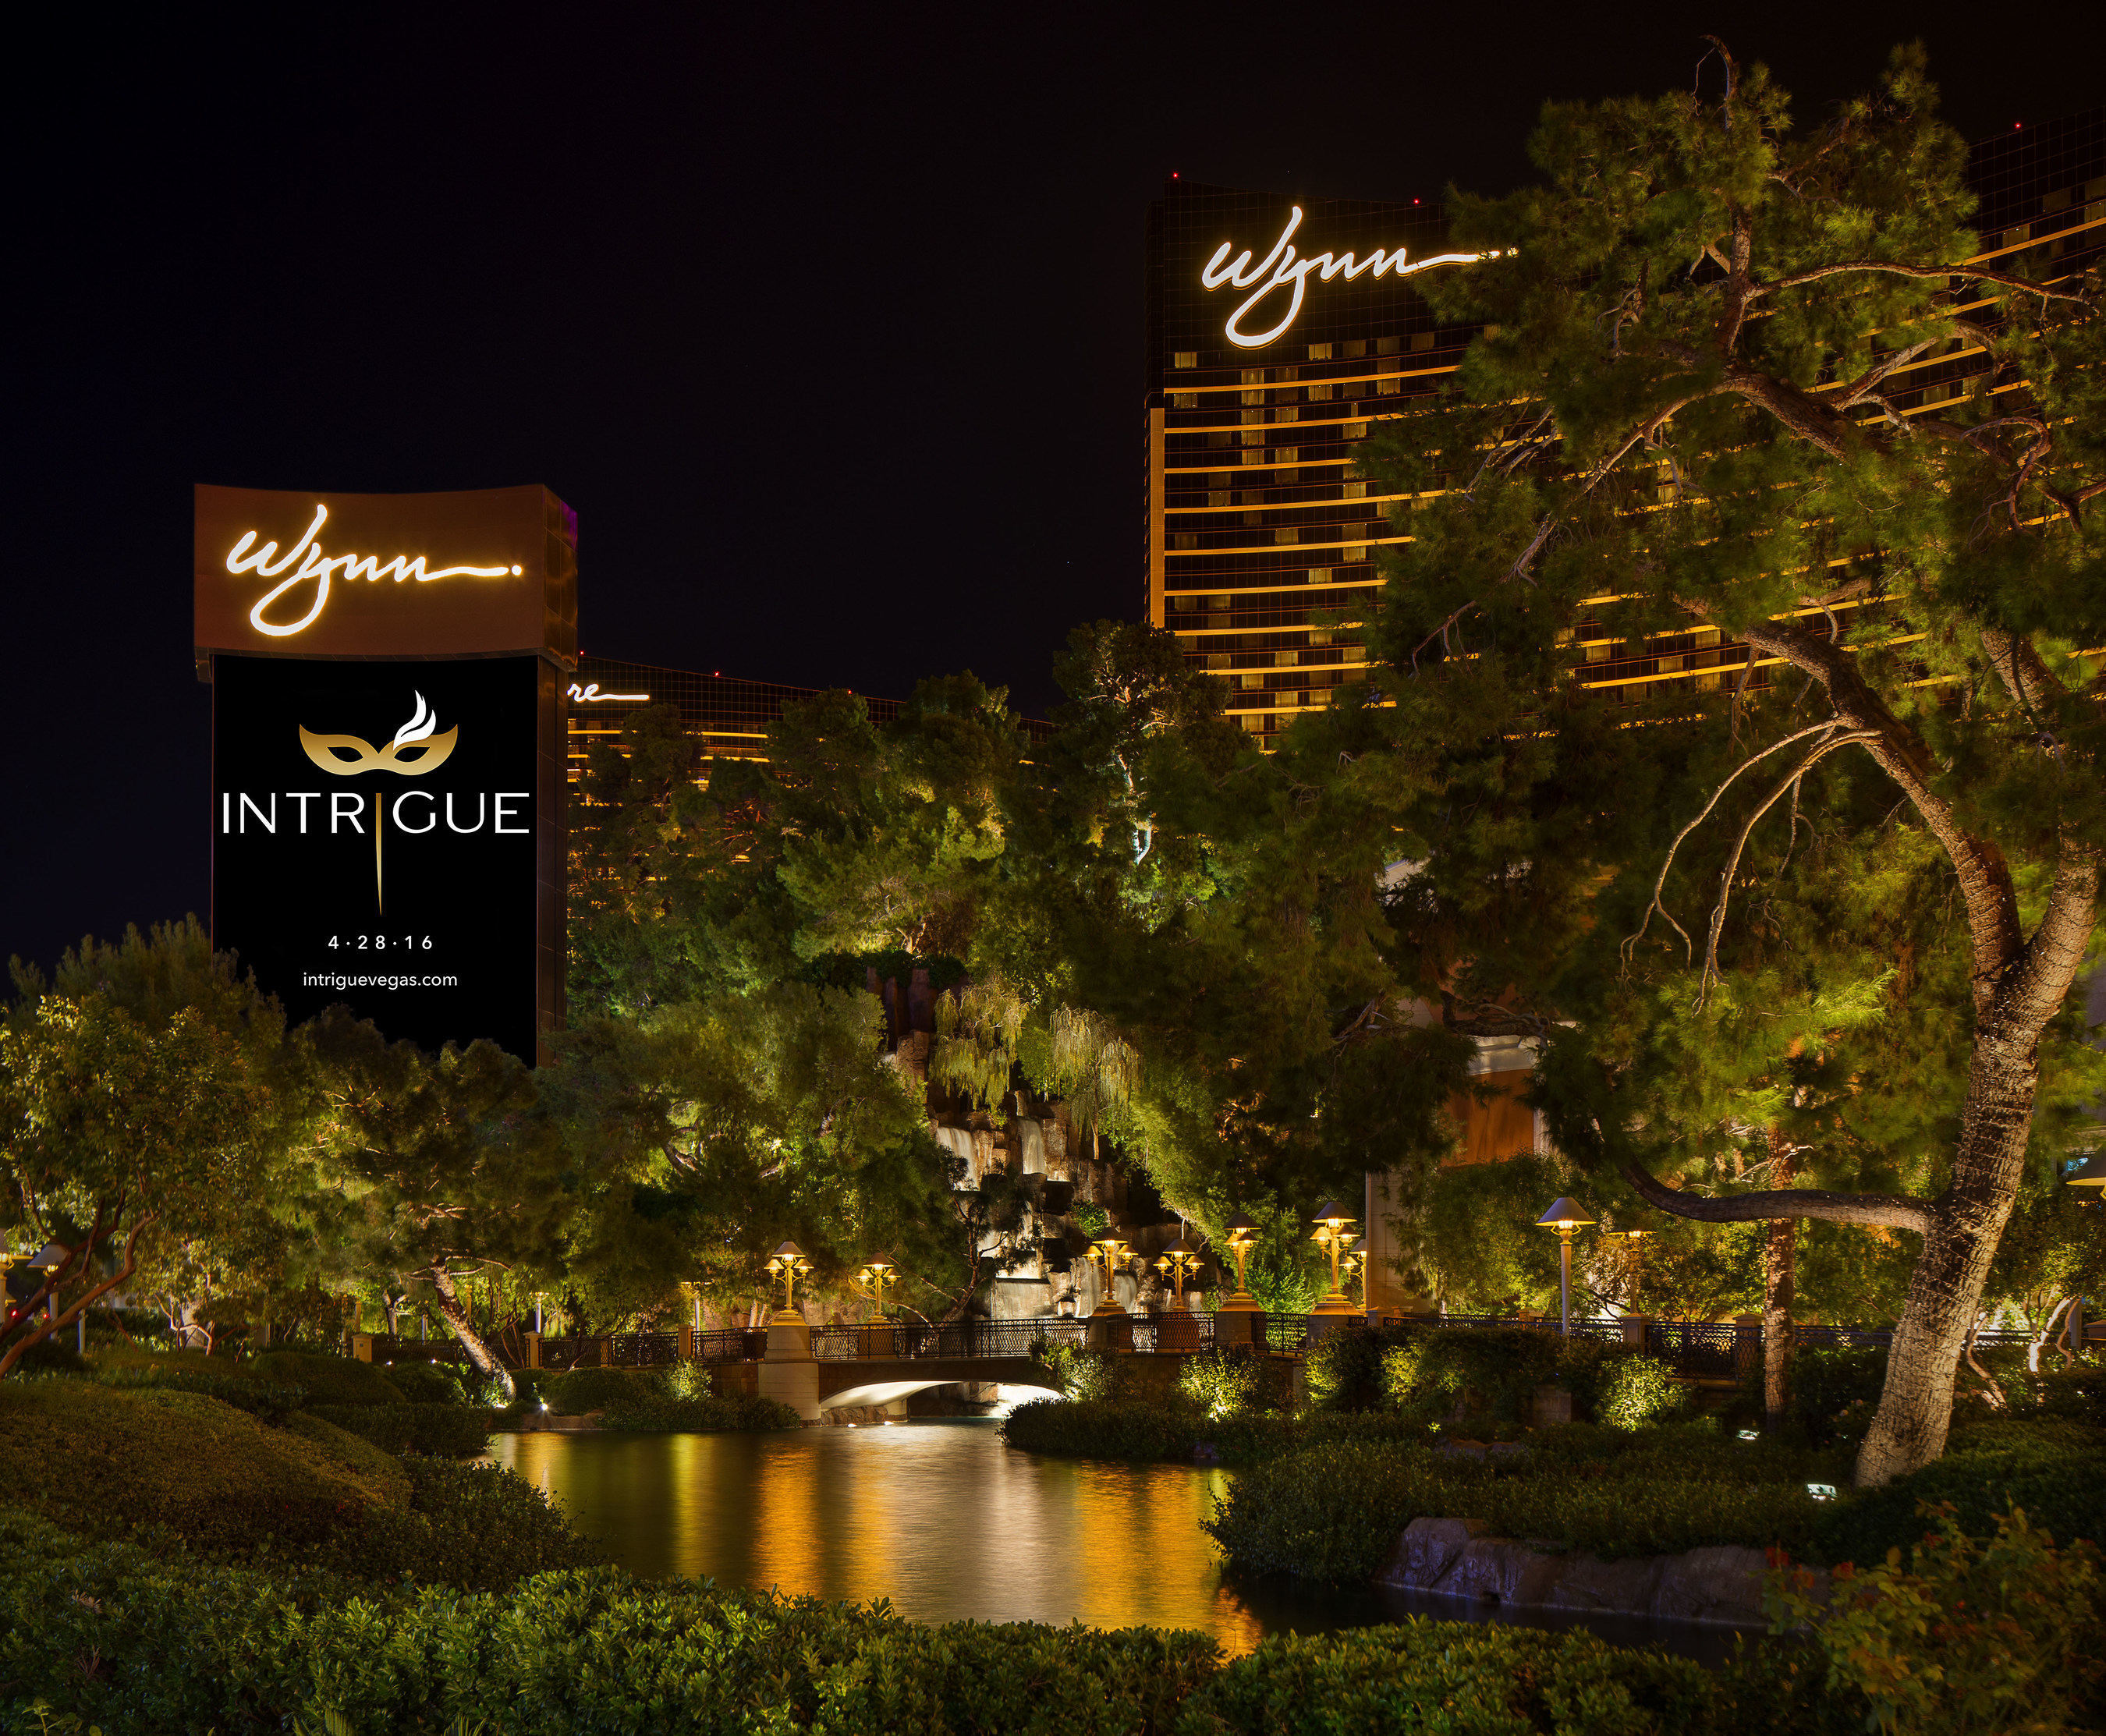 Wynn Las Vegas Announces Intrigue, a New Nightlife Concept Opening April 28, 2016